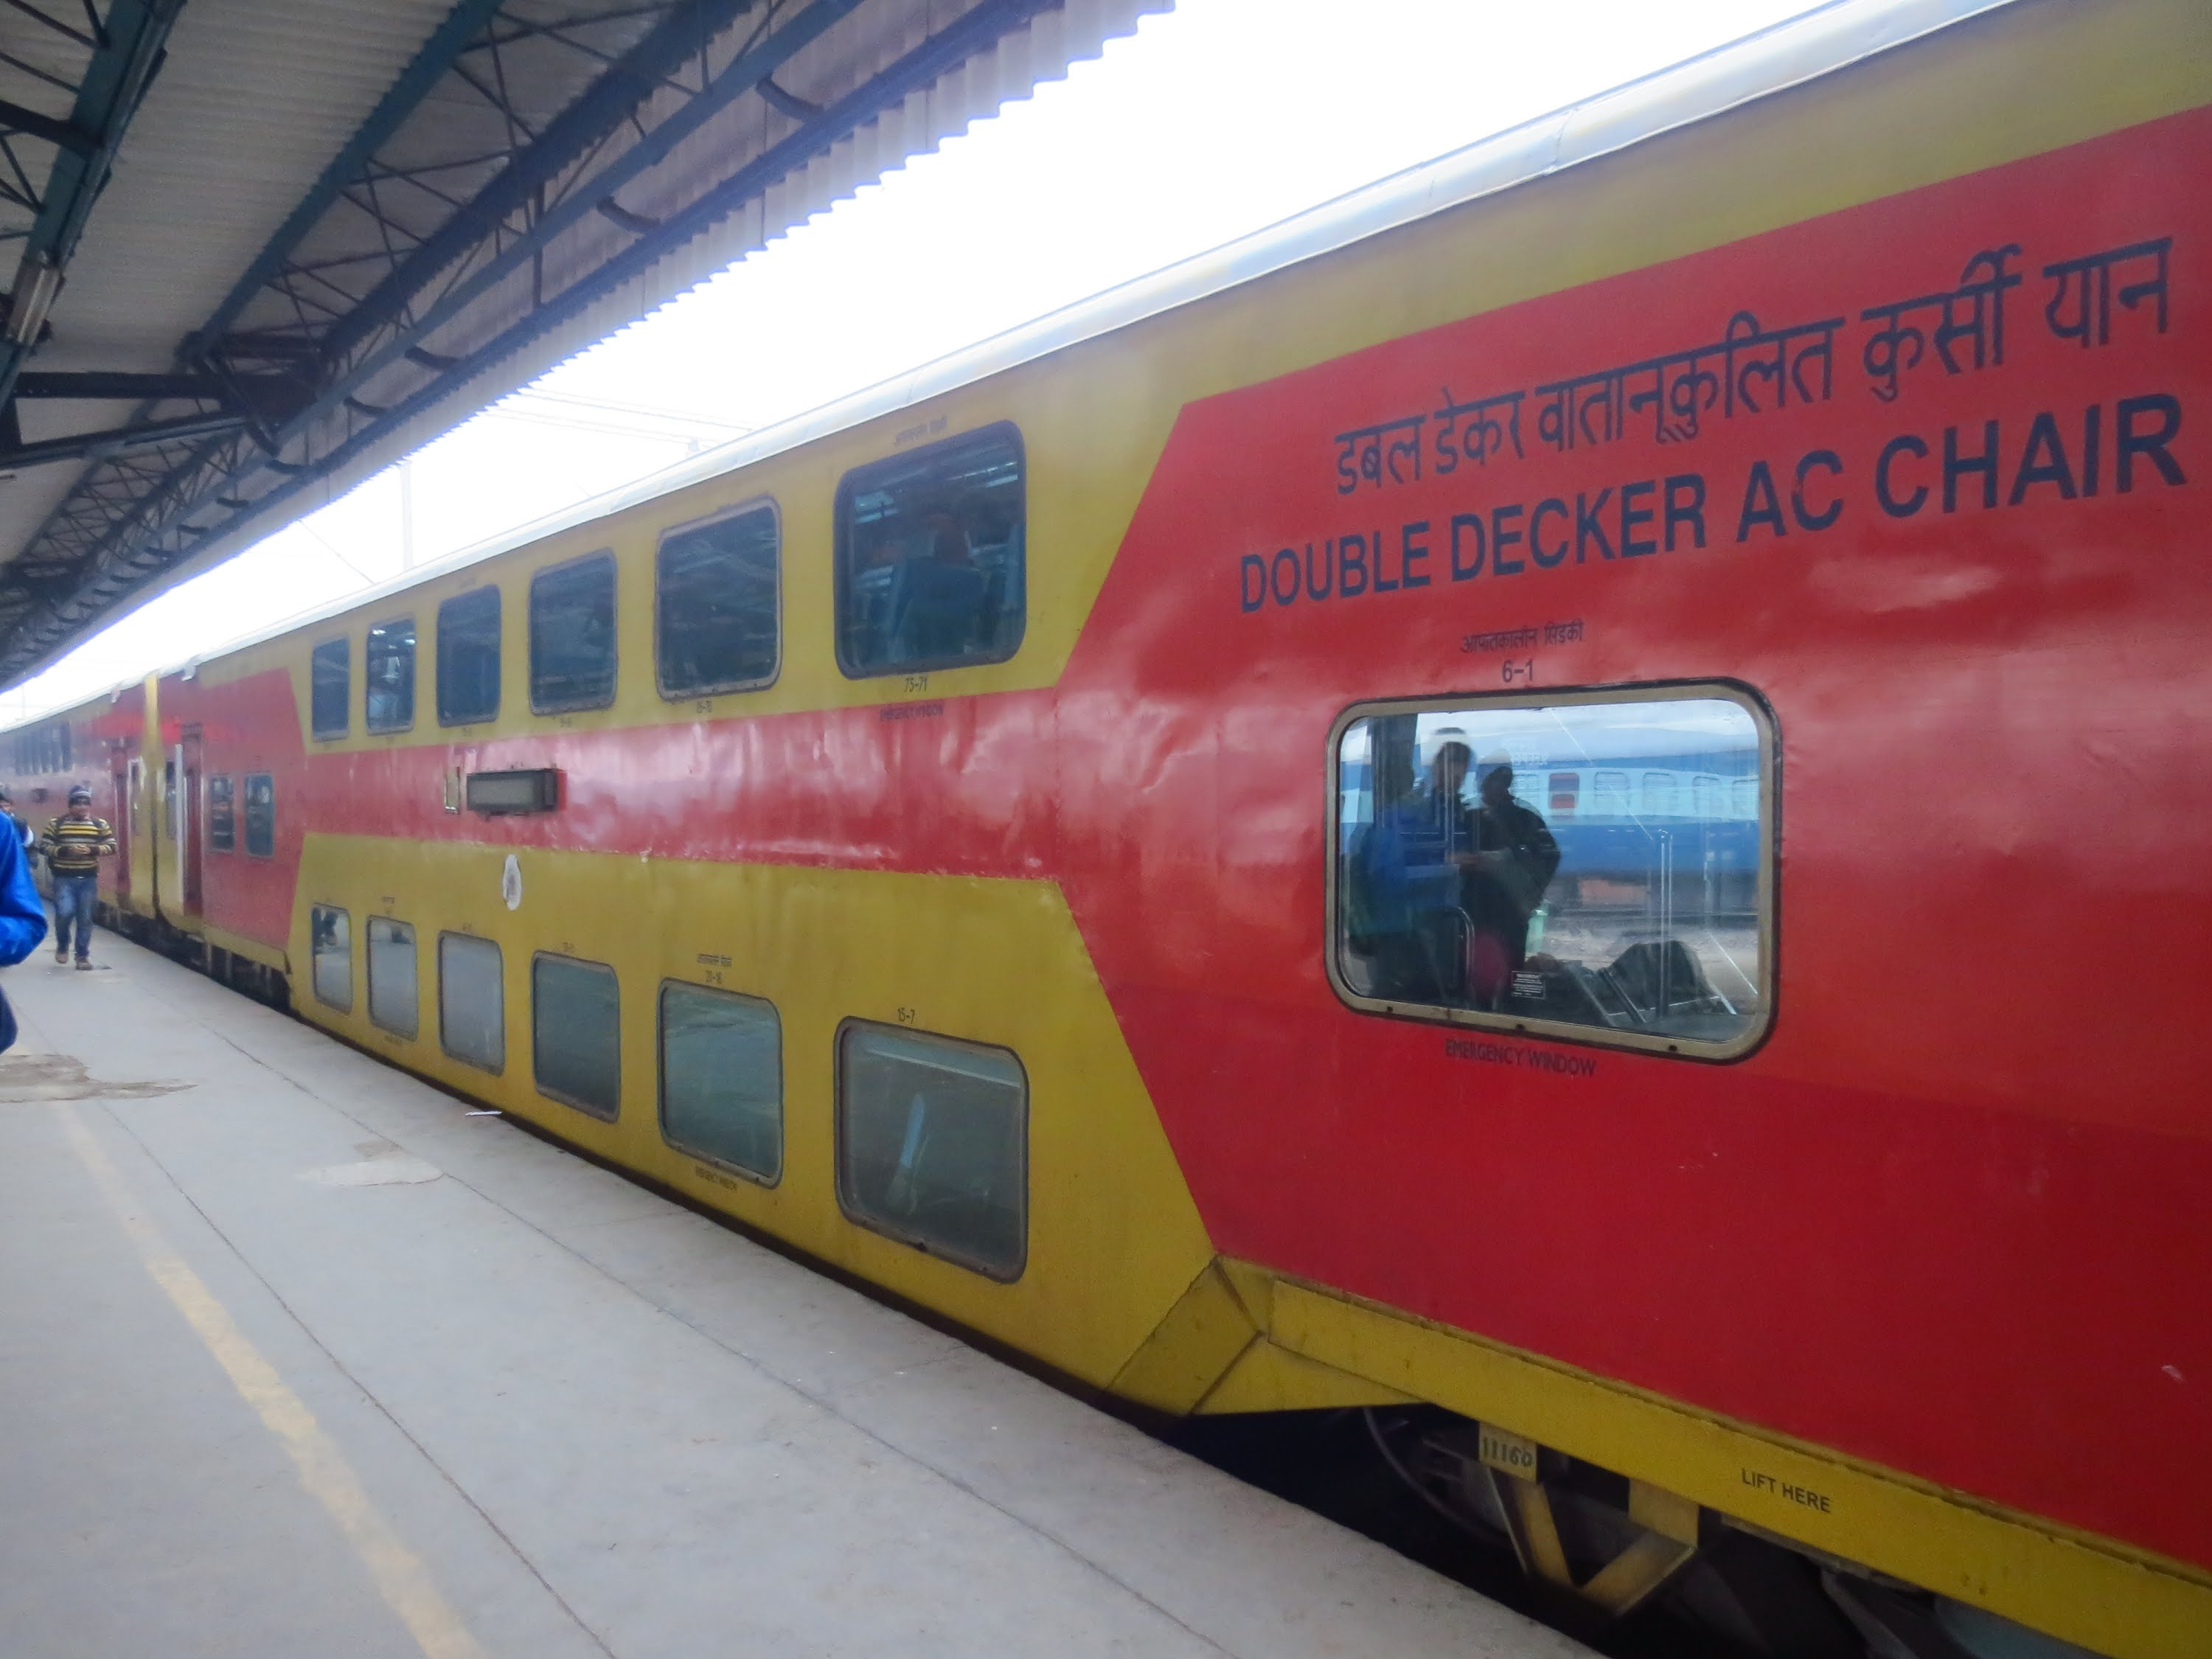 DOUBLE DECKER Jaipur